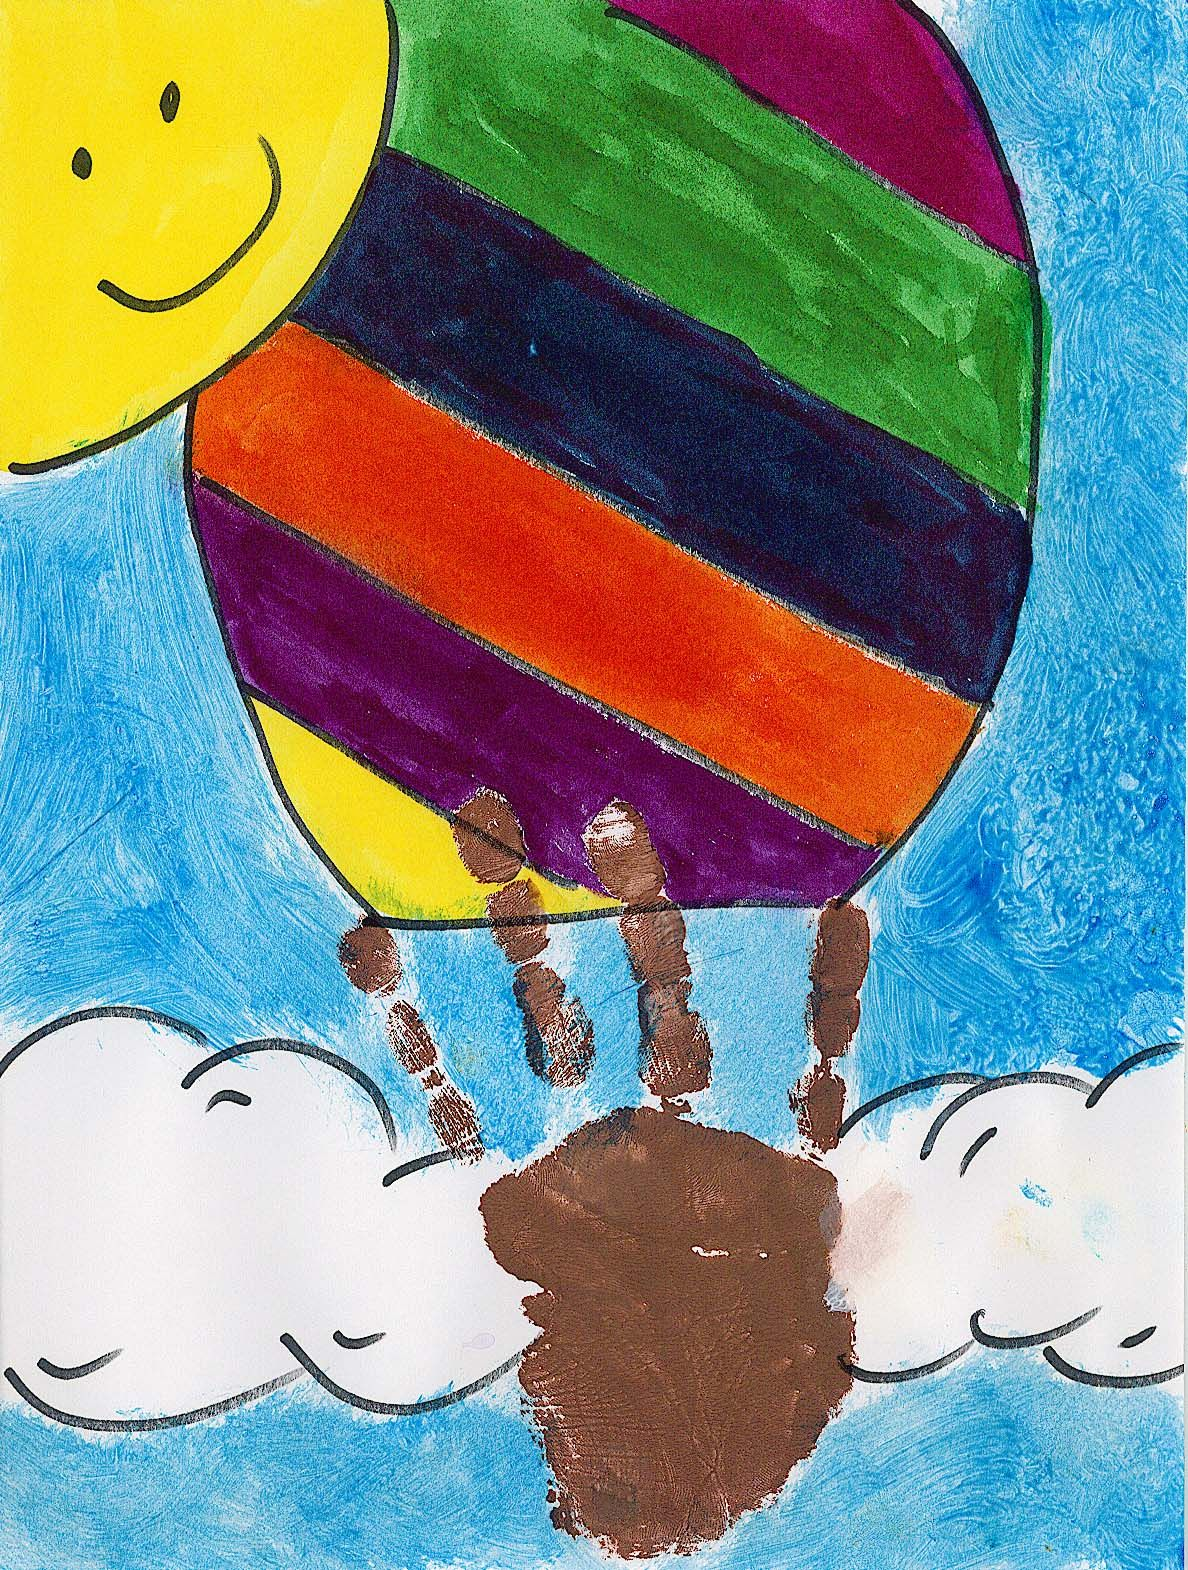 Hot Air Balloon With Images